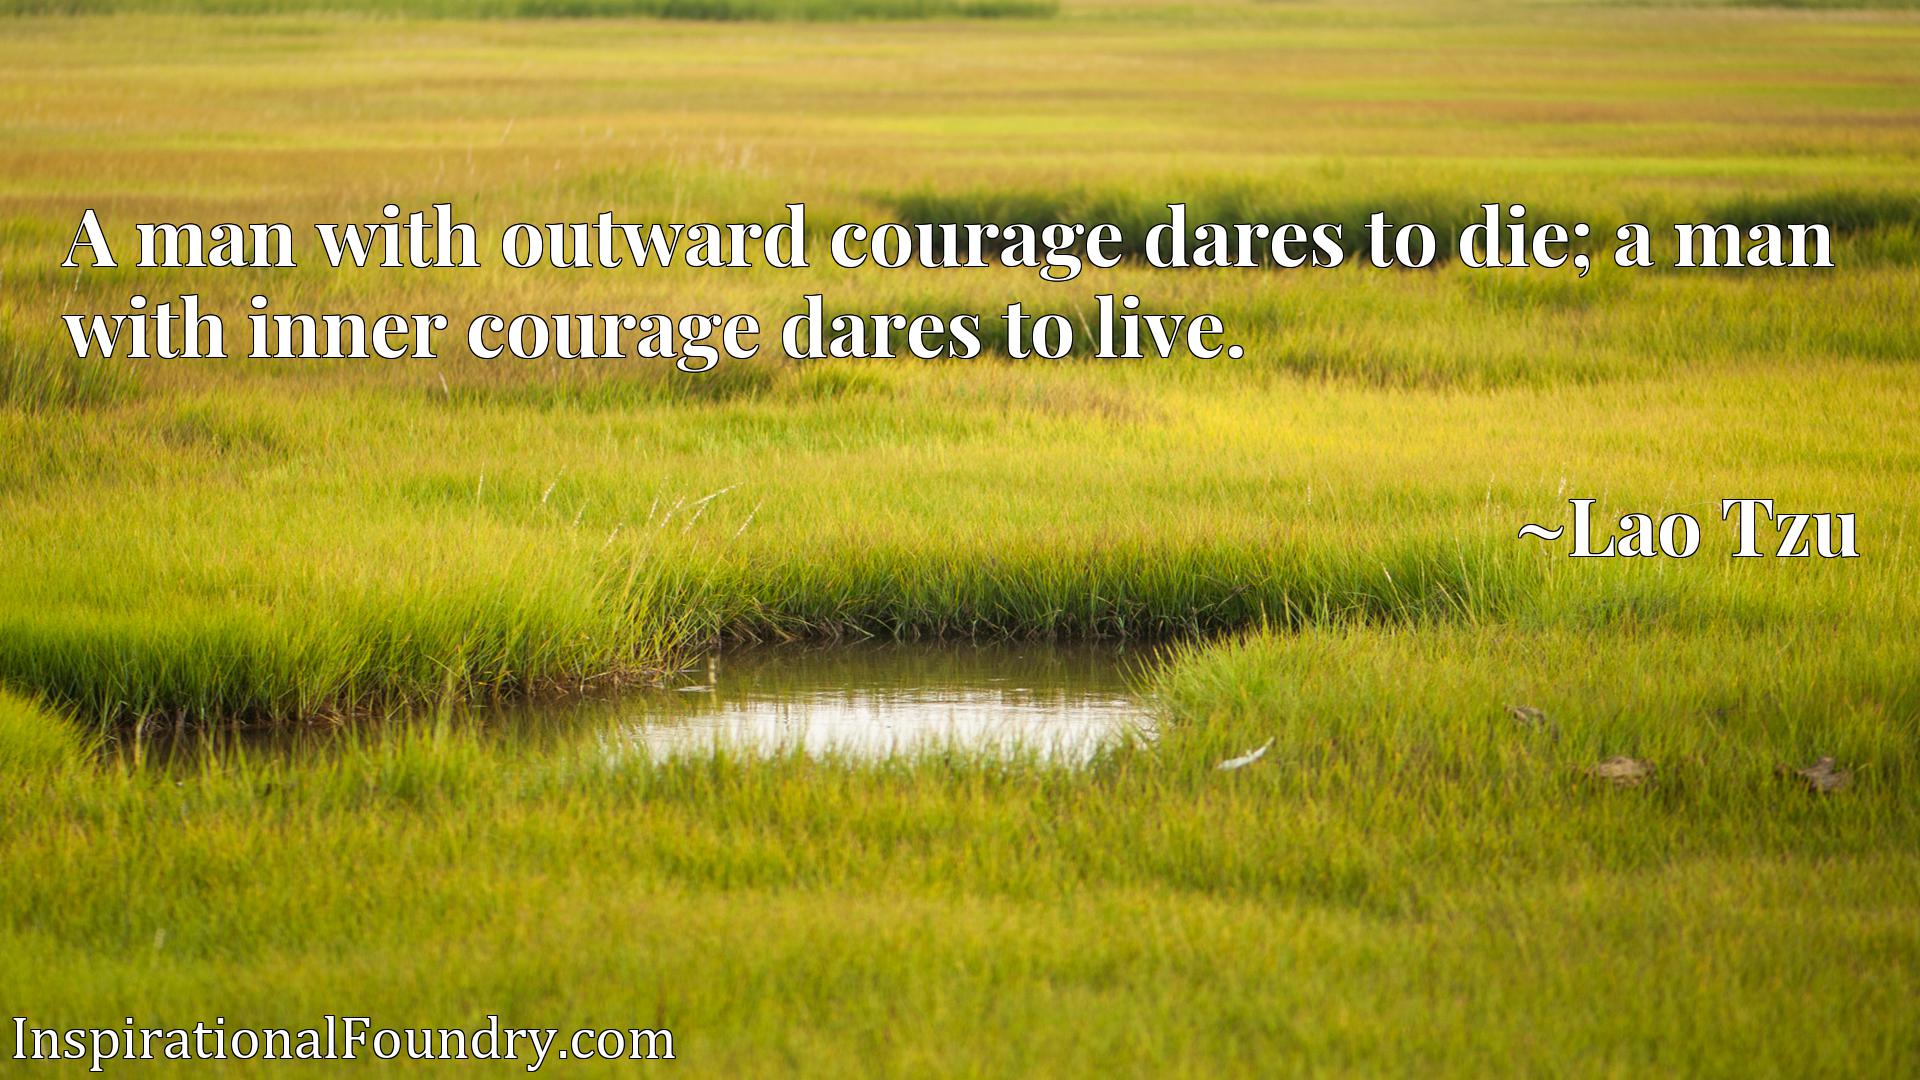 A man with outward courage dares to die; a man with inner courage dares to live.